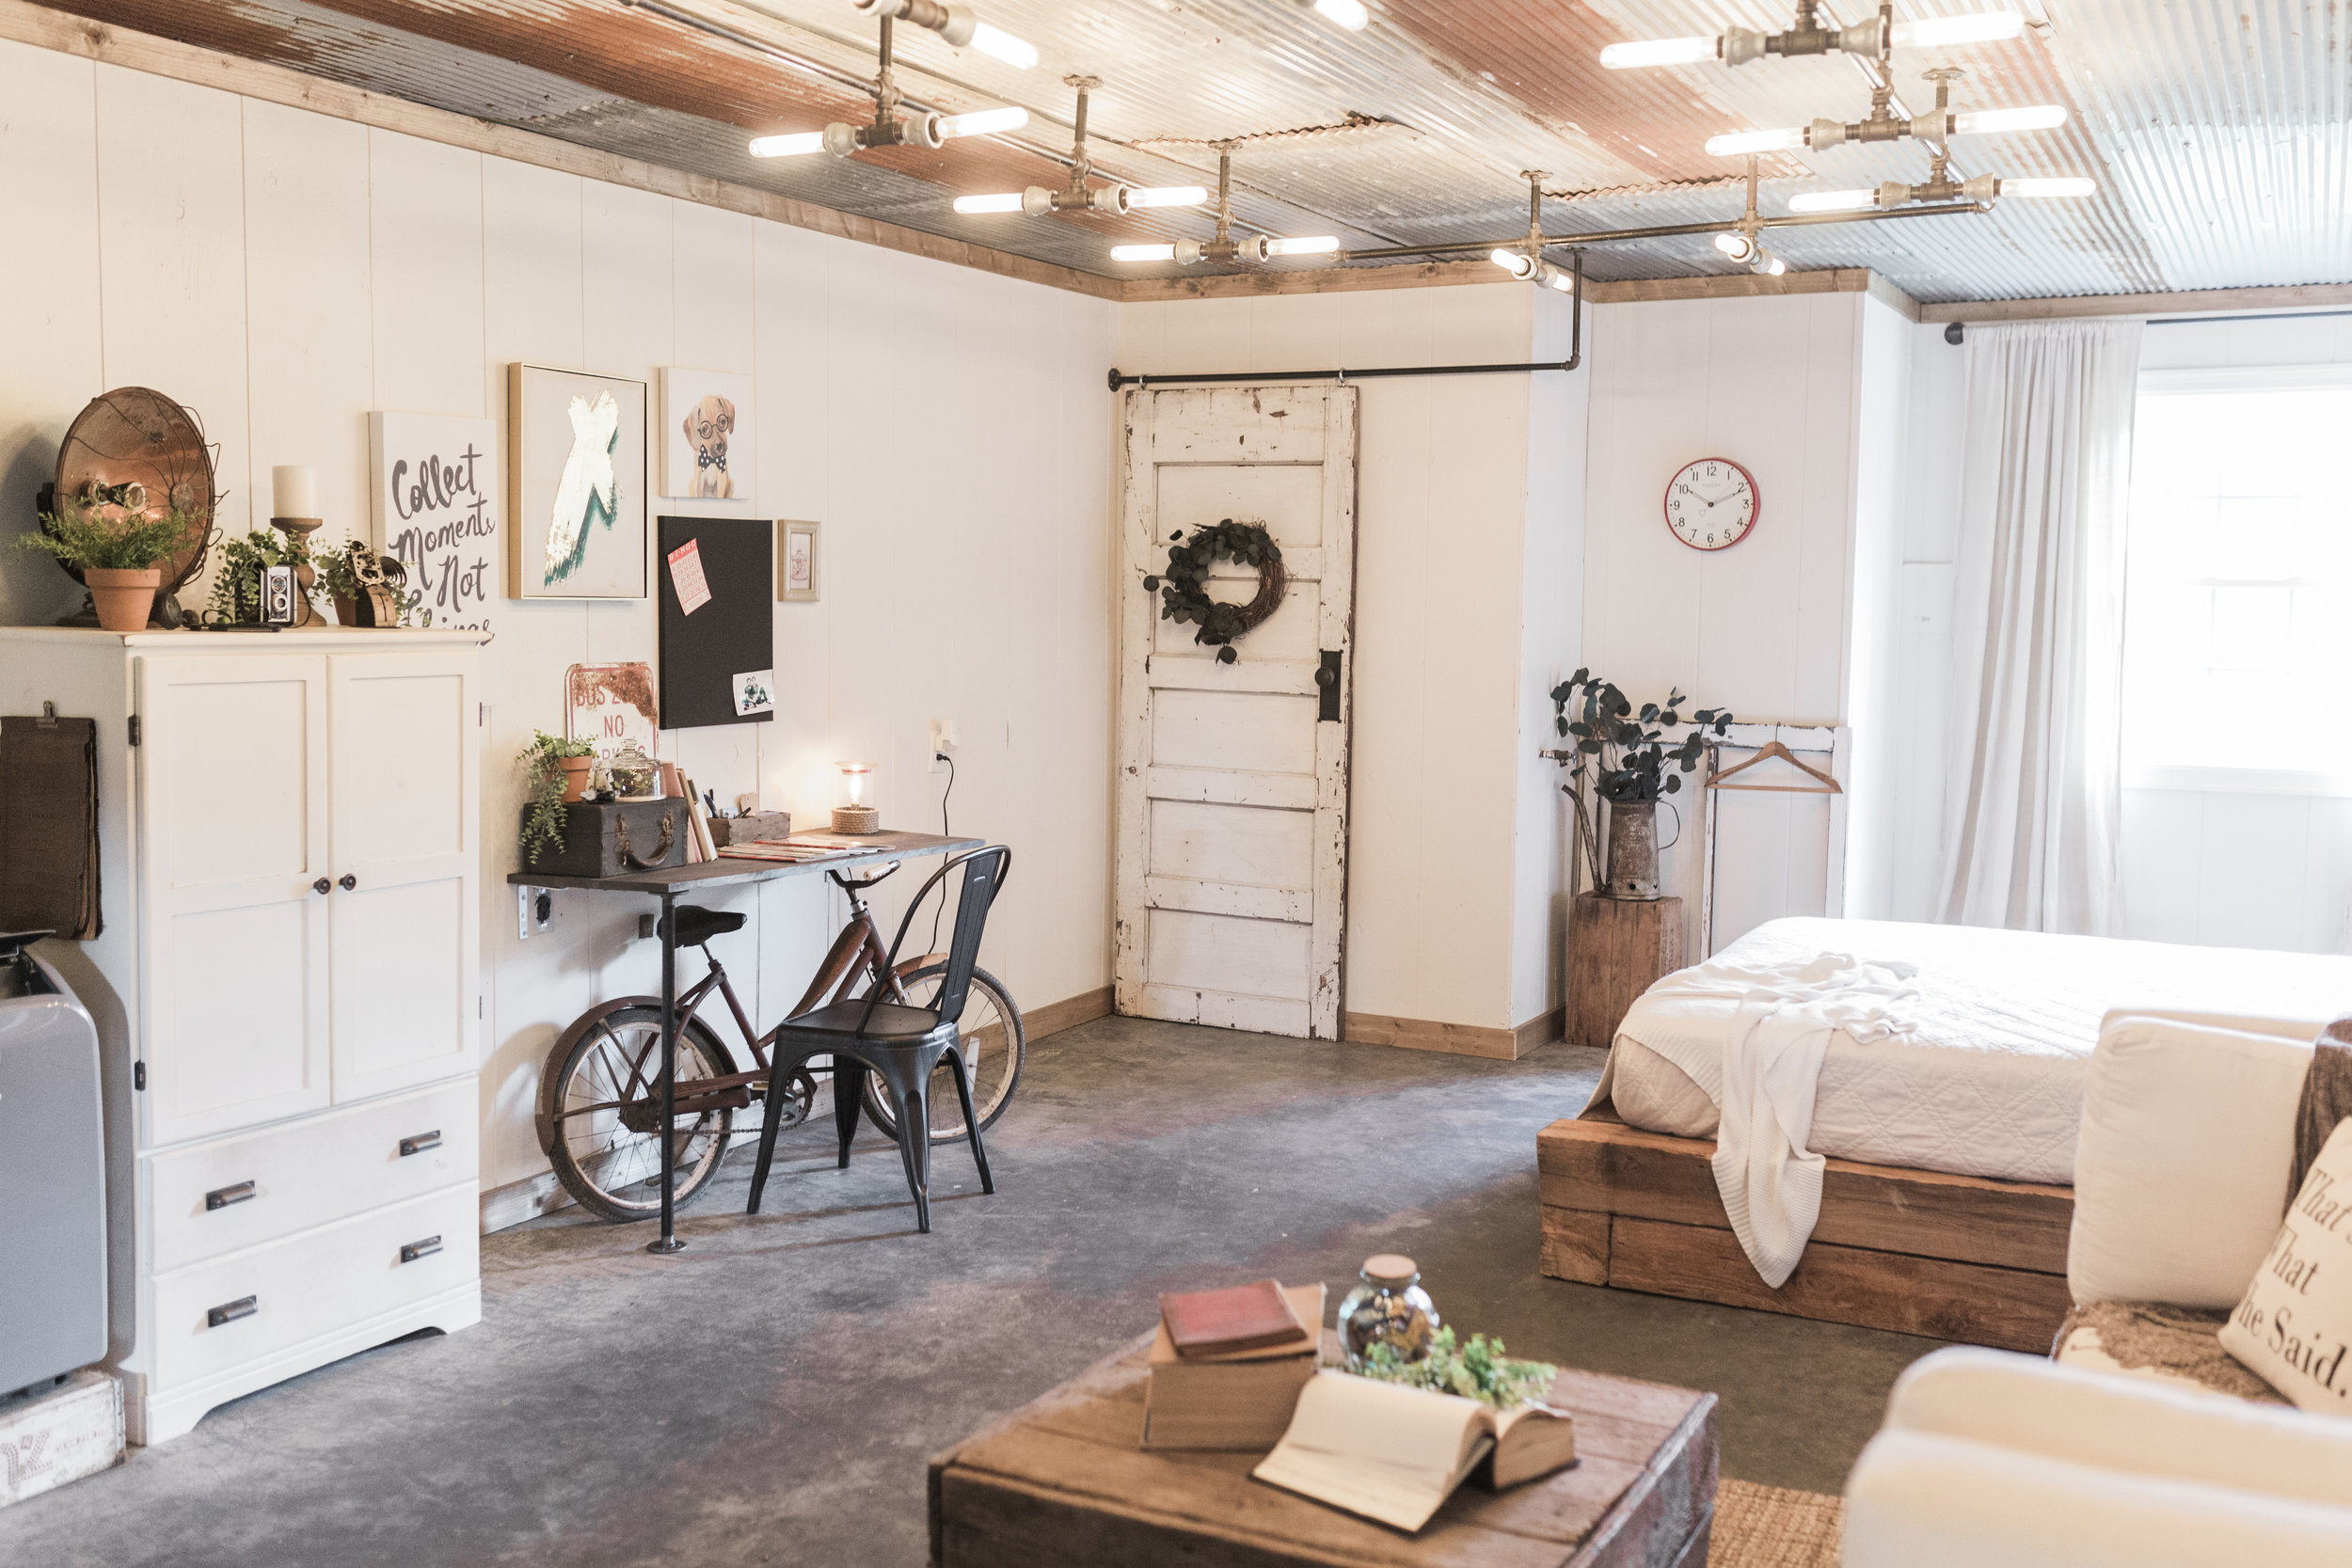 The tin on the ceiling was repurposed from an old shed we had on our property and the platform bed was made from the heavy wood beams from the shed. Much of the decor was found at flea markets and antique stores.